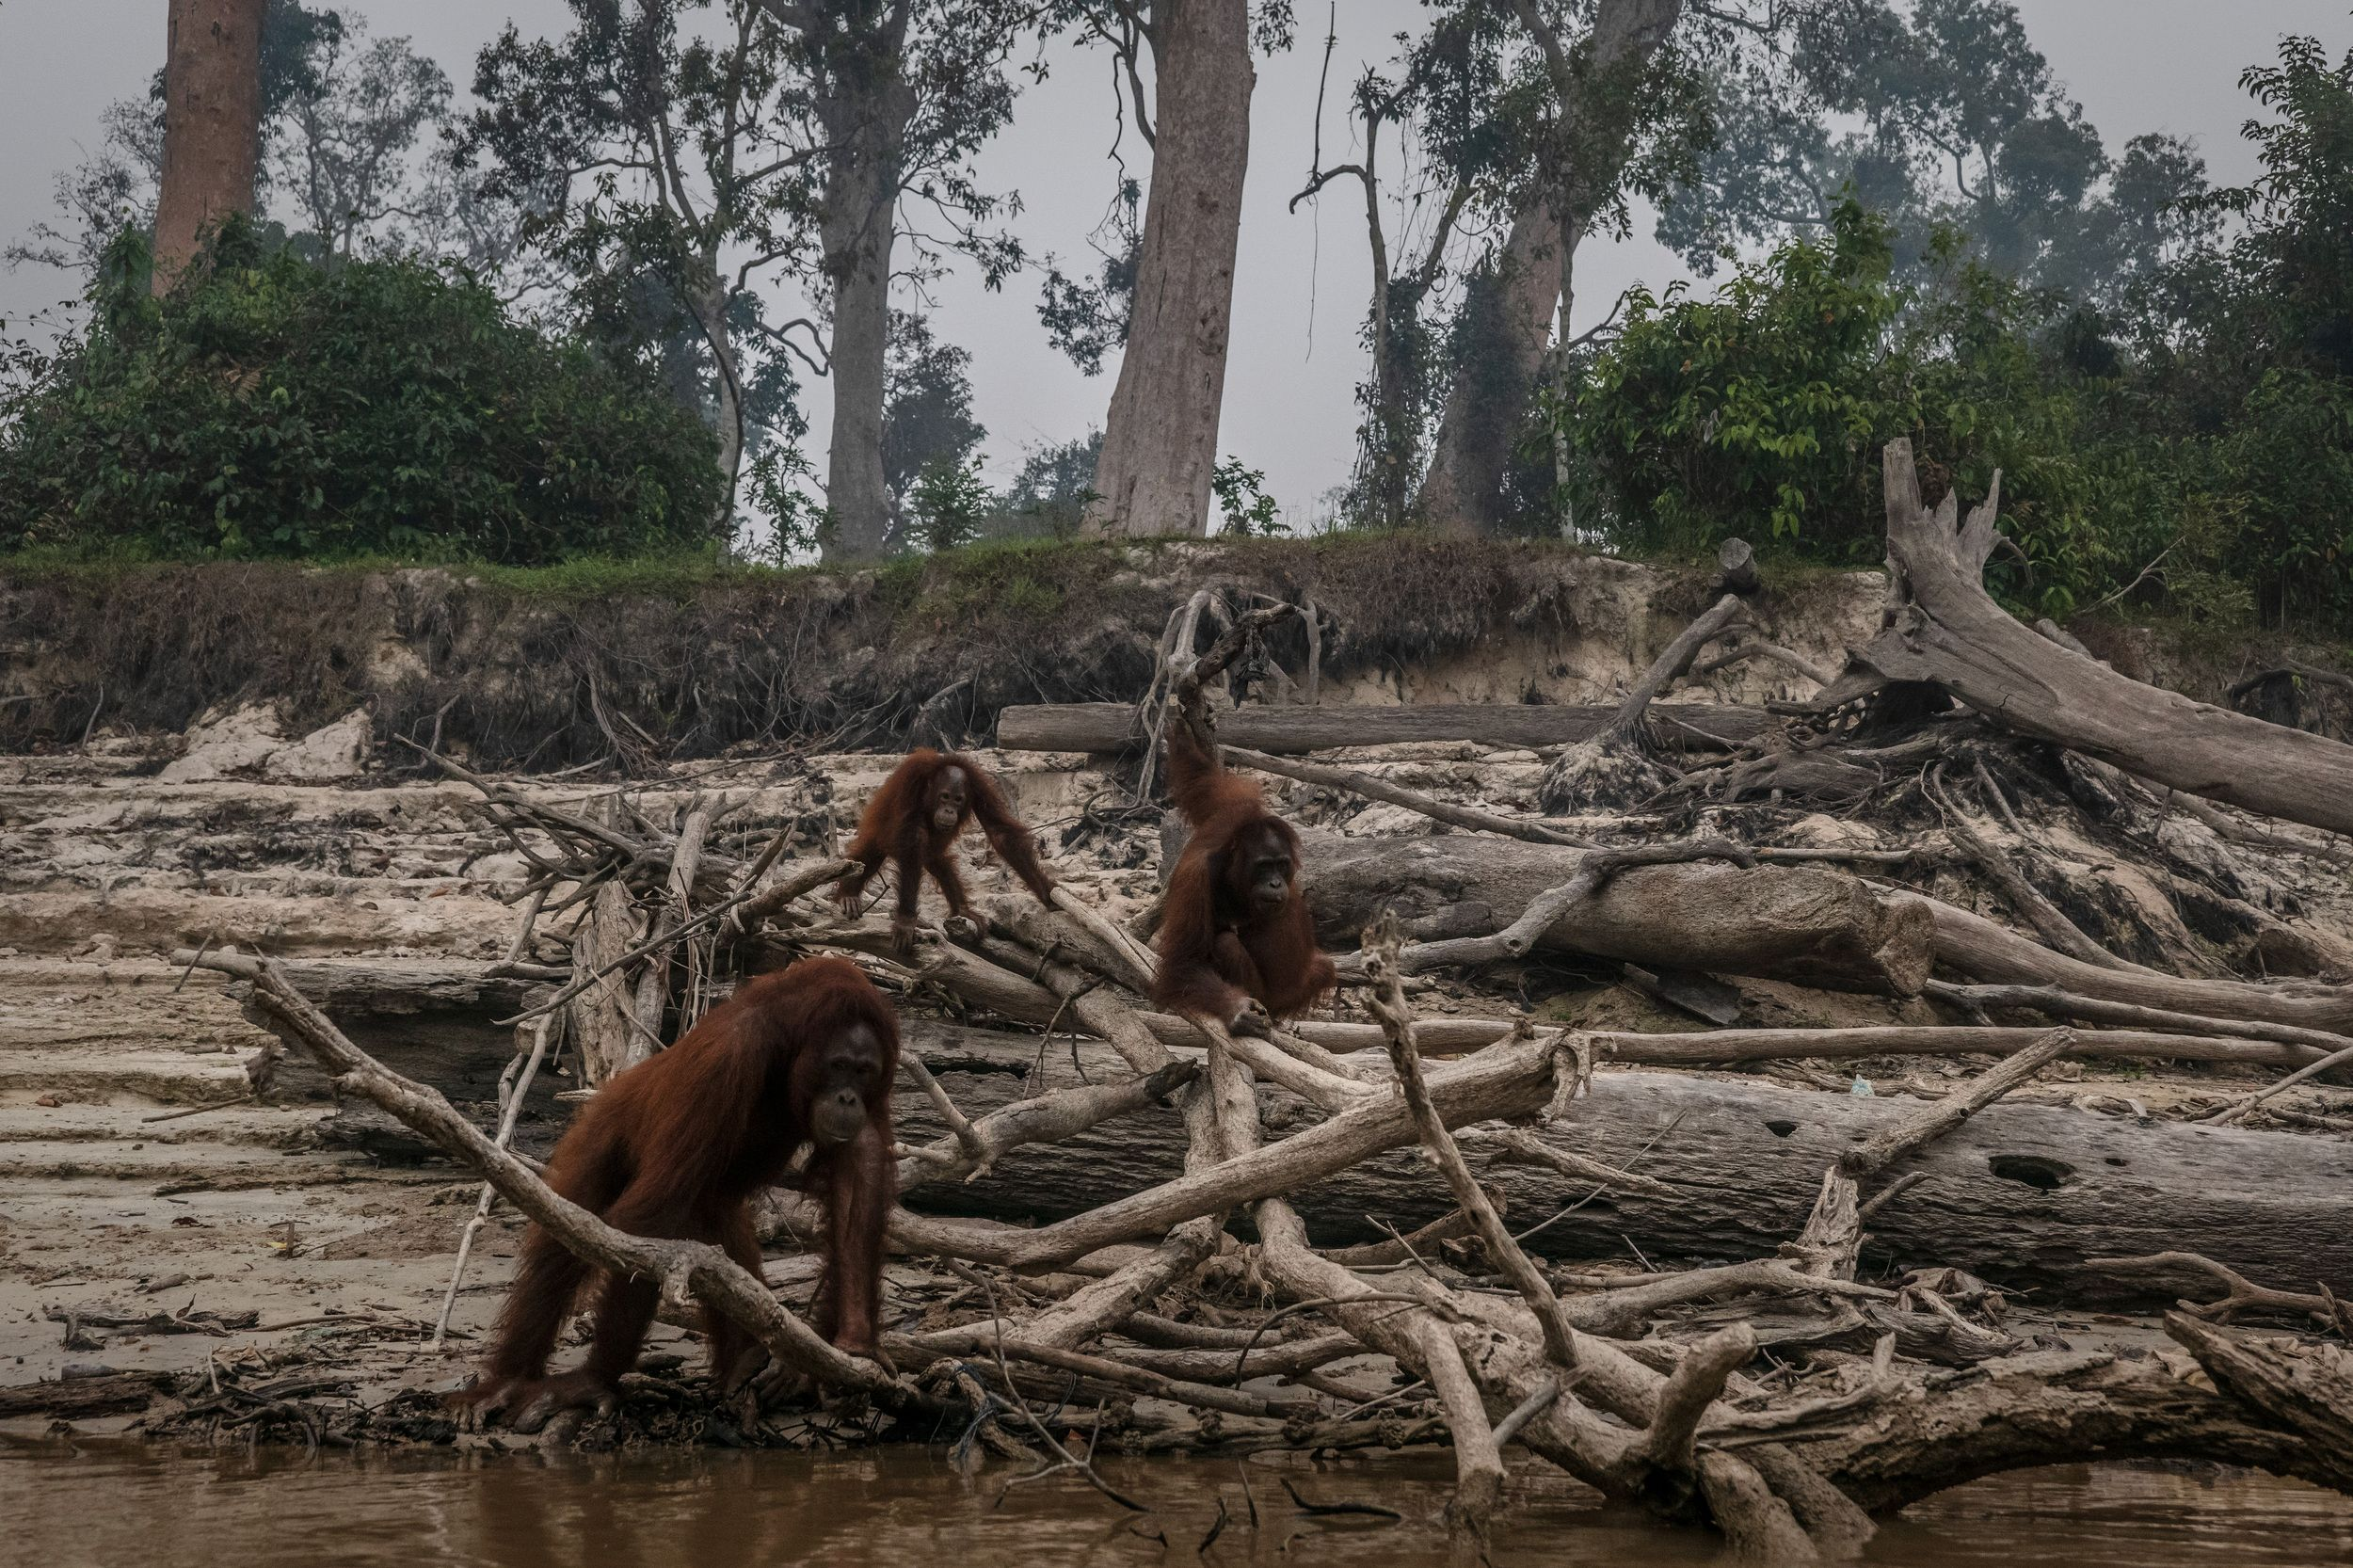 Tragic photos show orangutans roaming charred forest after